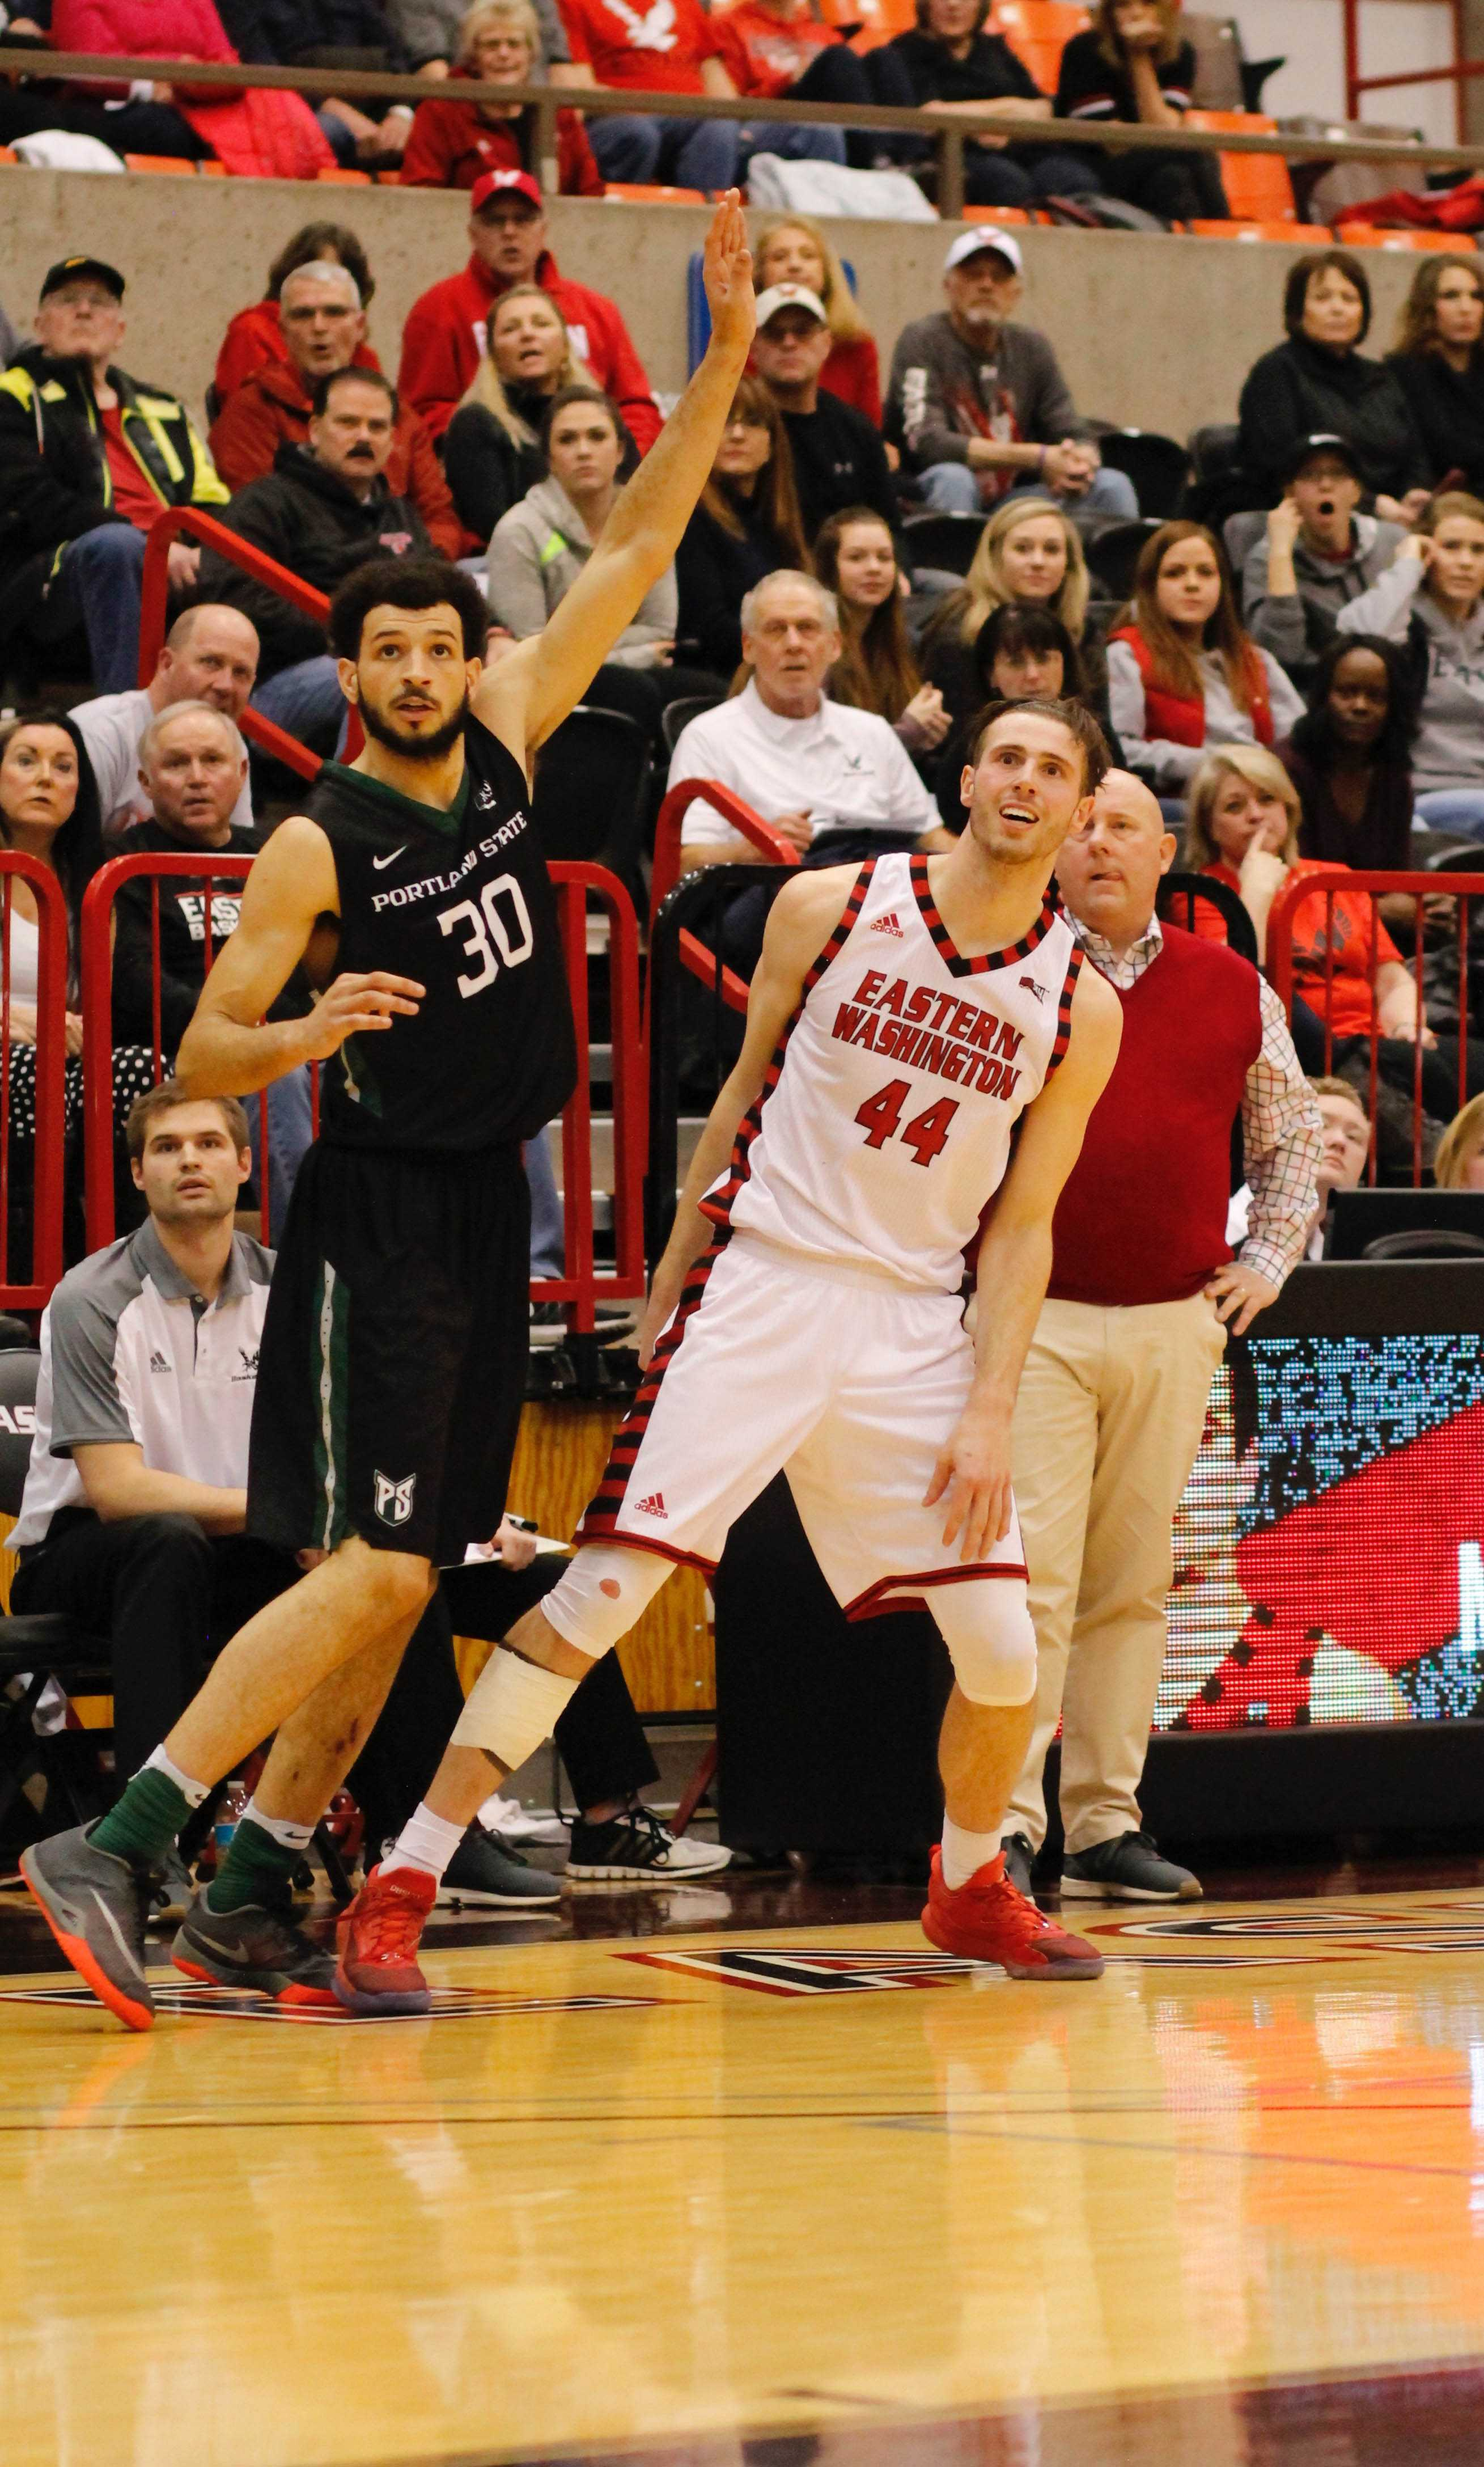 Senior+forward+Felix+Von+Hofe+watches+his+three+point+attempt+in+overtime+against+Portland+State%2C+Feb.+4%2C+2017%2C+at+Reese+Court.